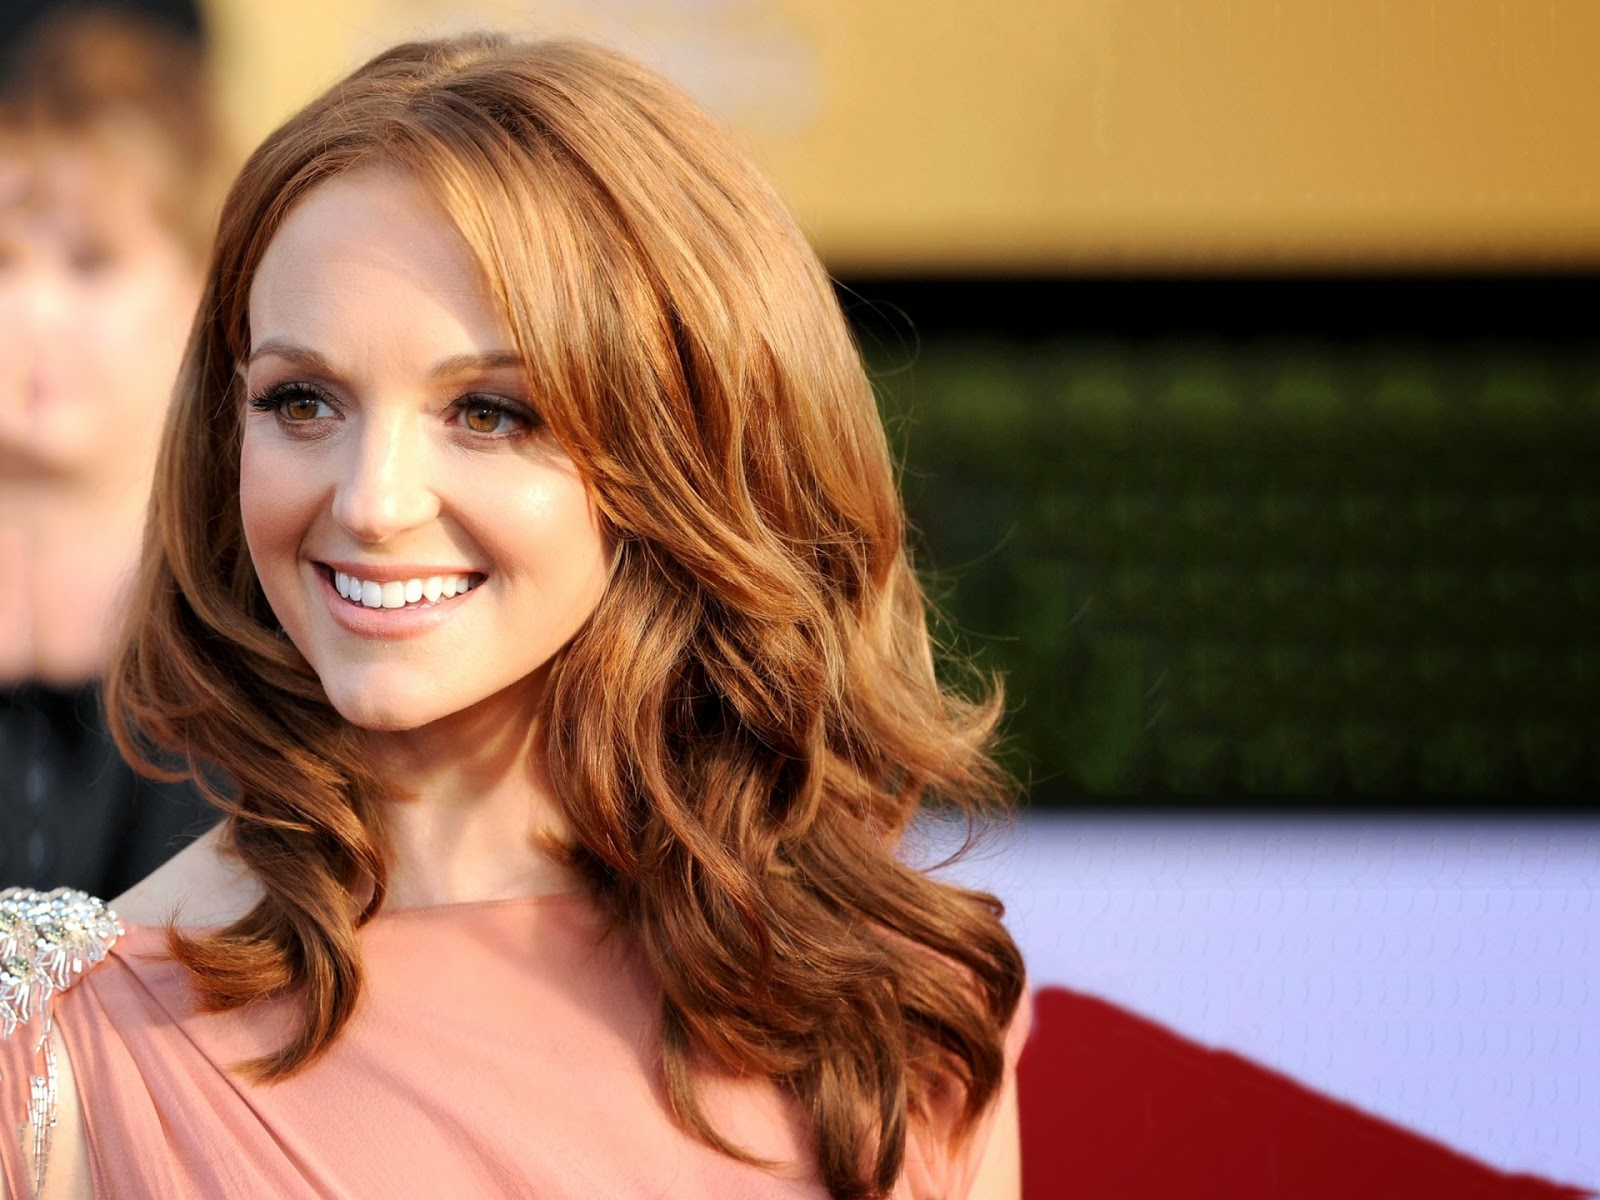 jayma mays smile computer wallpaper 64035